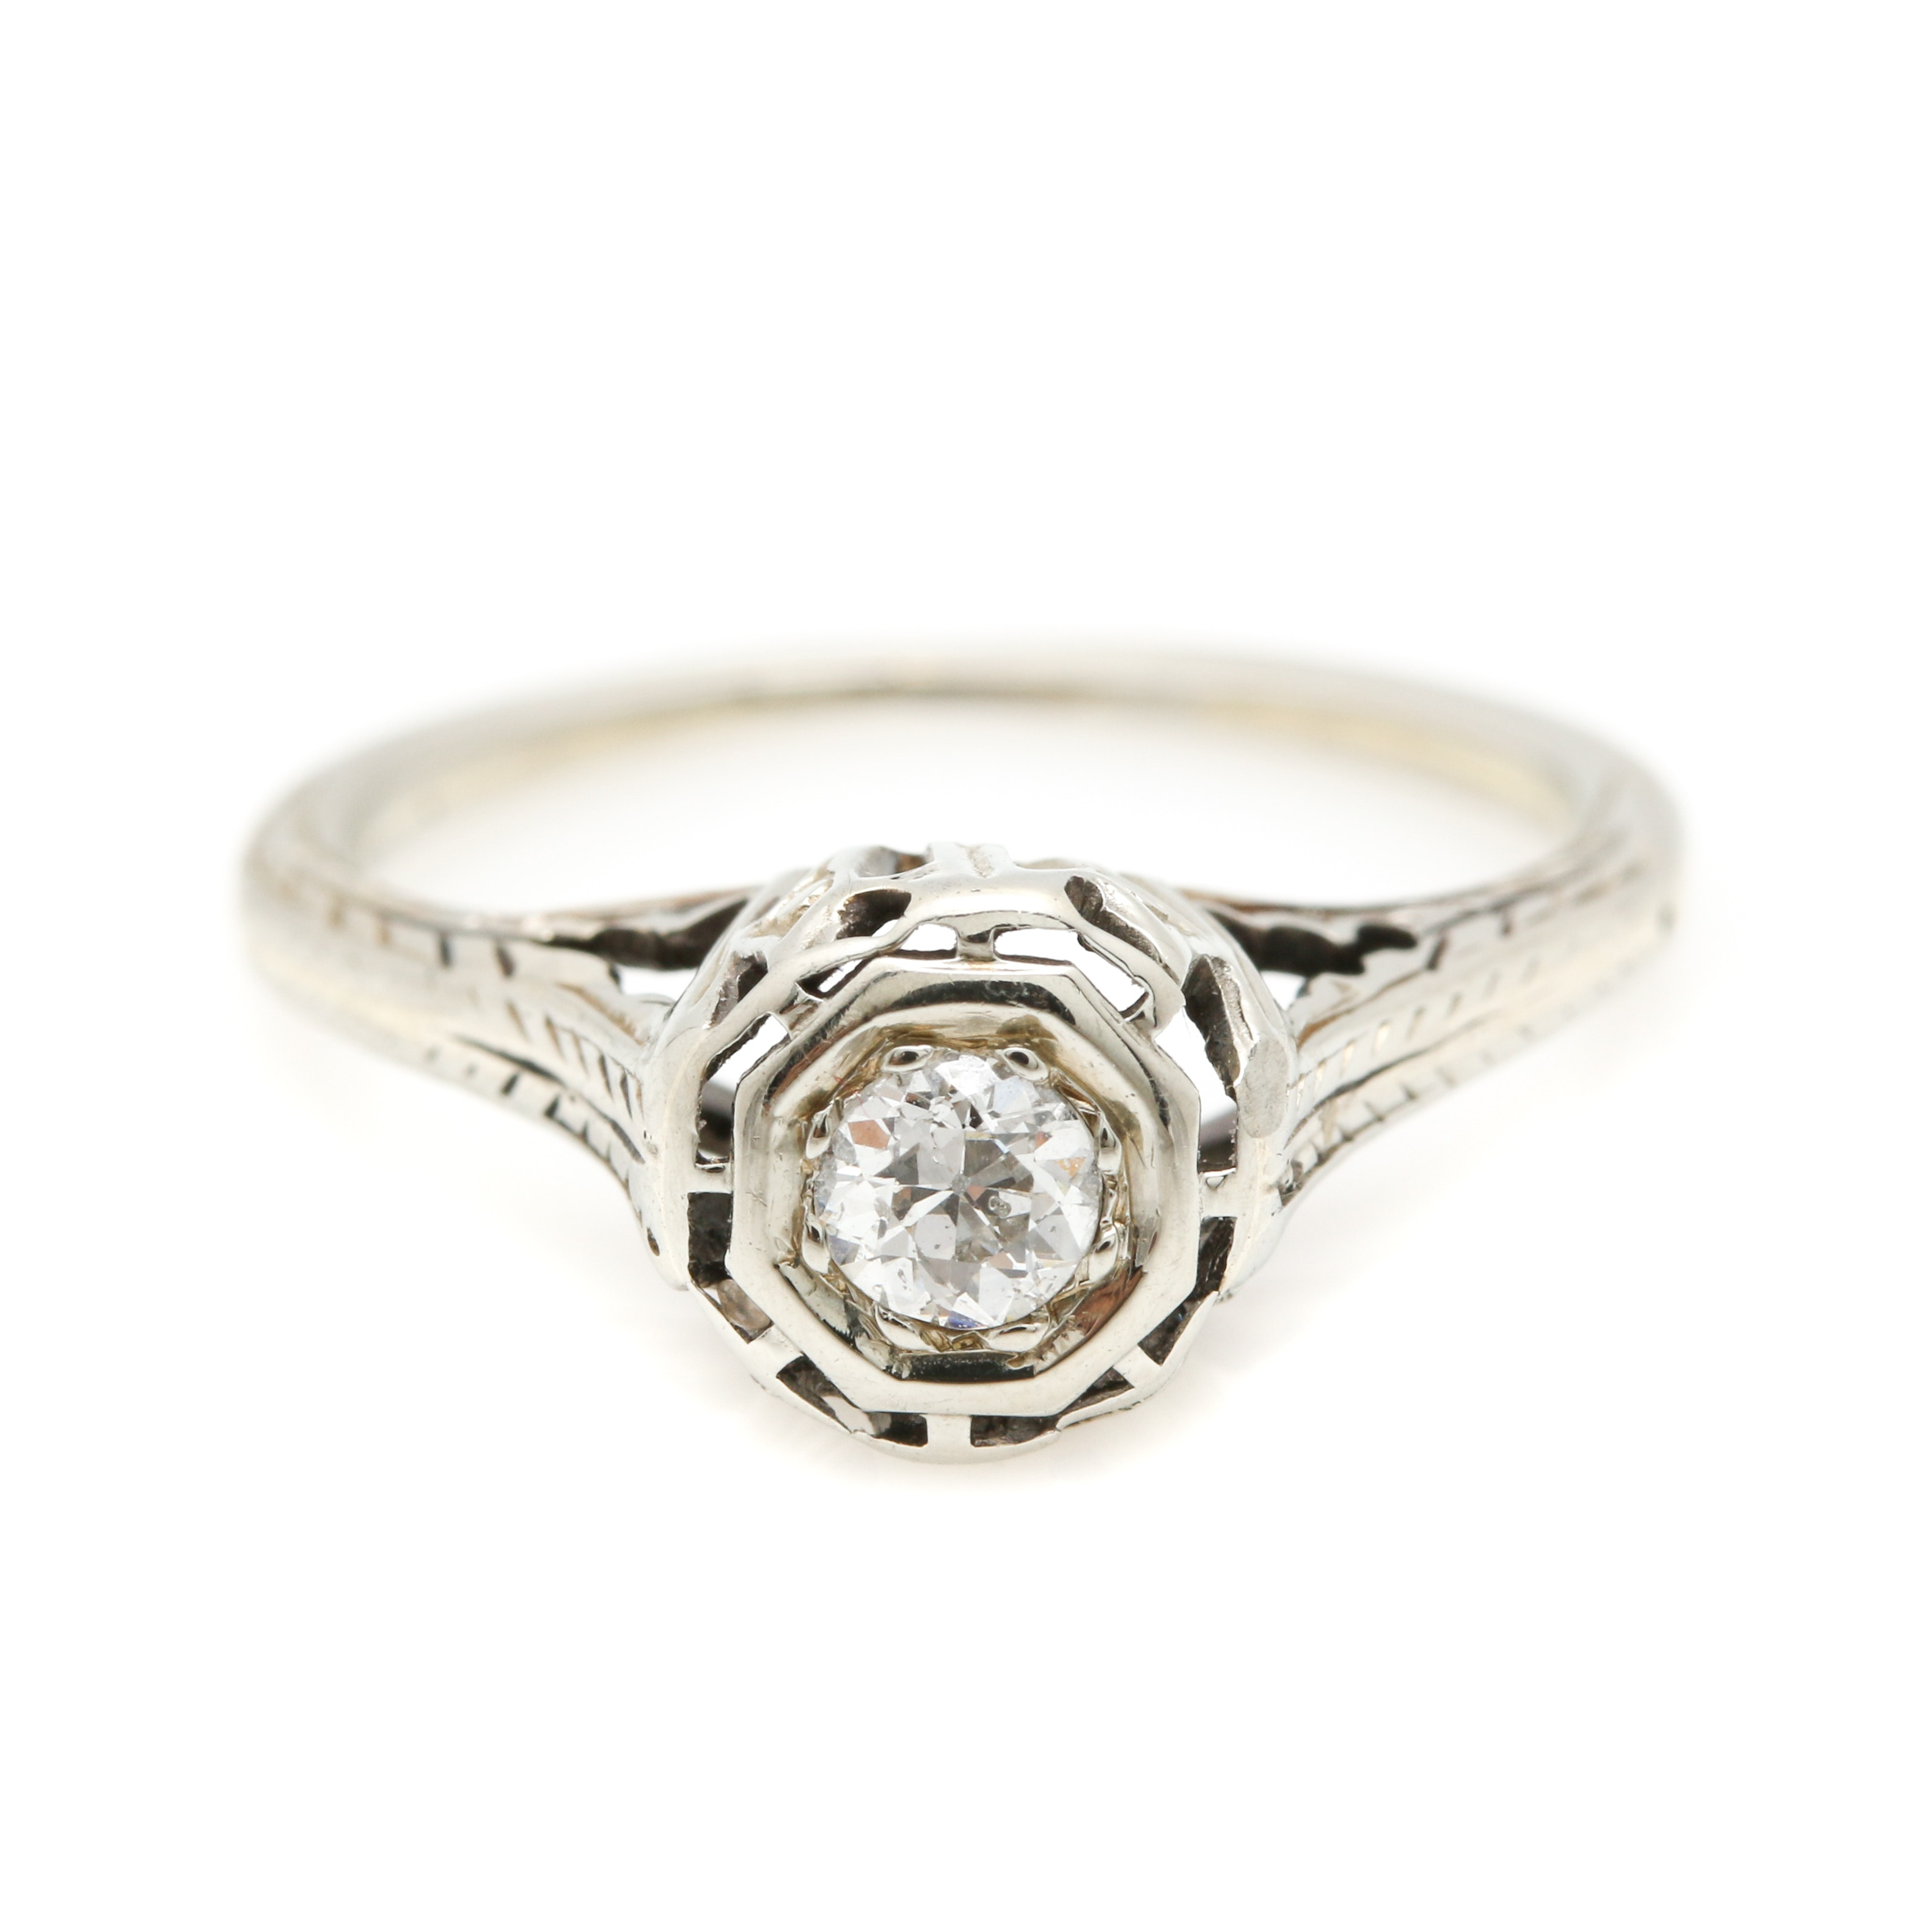 Late Edwardian 18K White Gold Diamond Ring